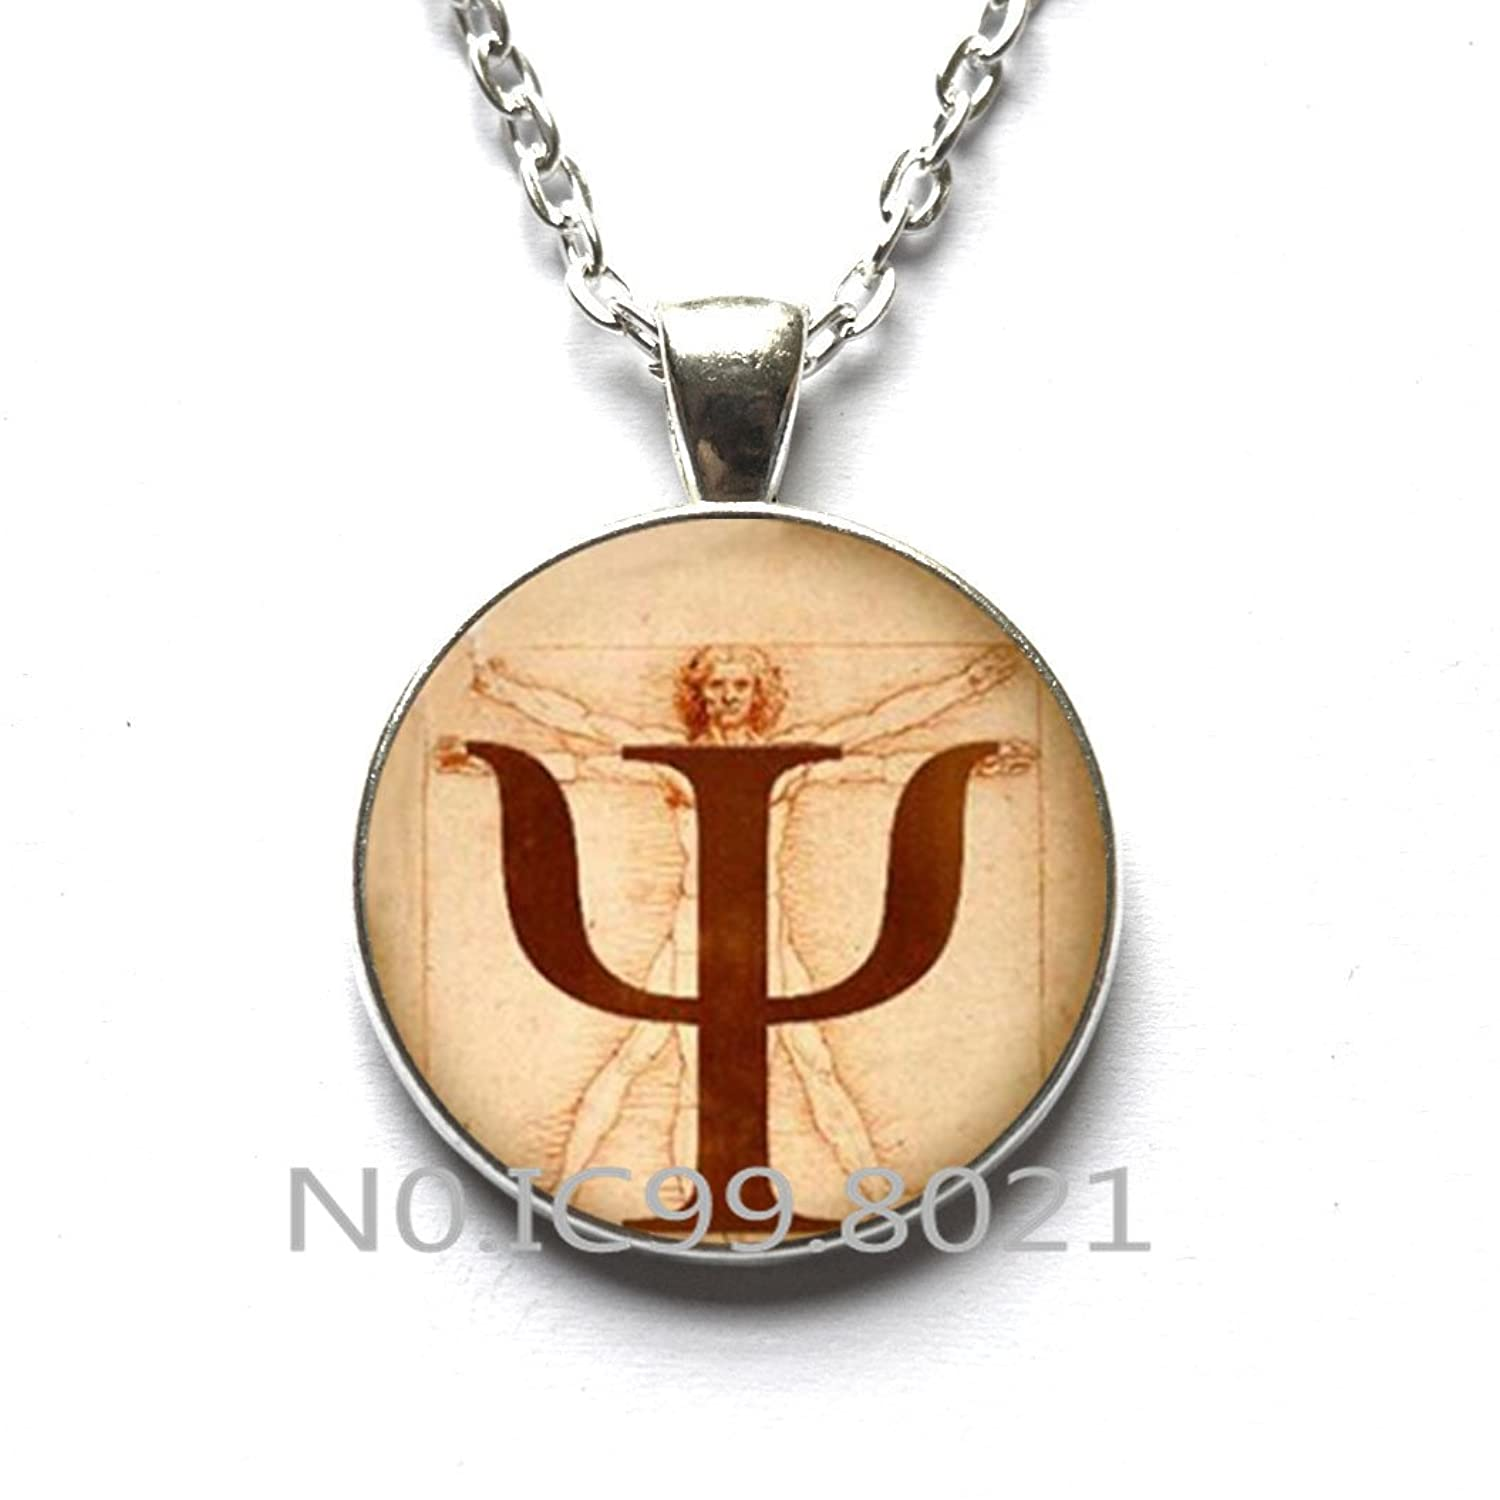 Amazon Fashion Necklace Fashion Pendantpsi Symbol Necklace